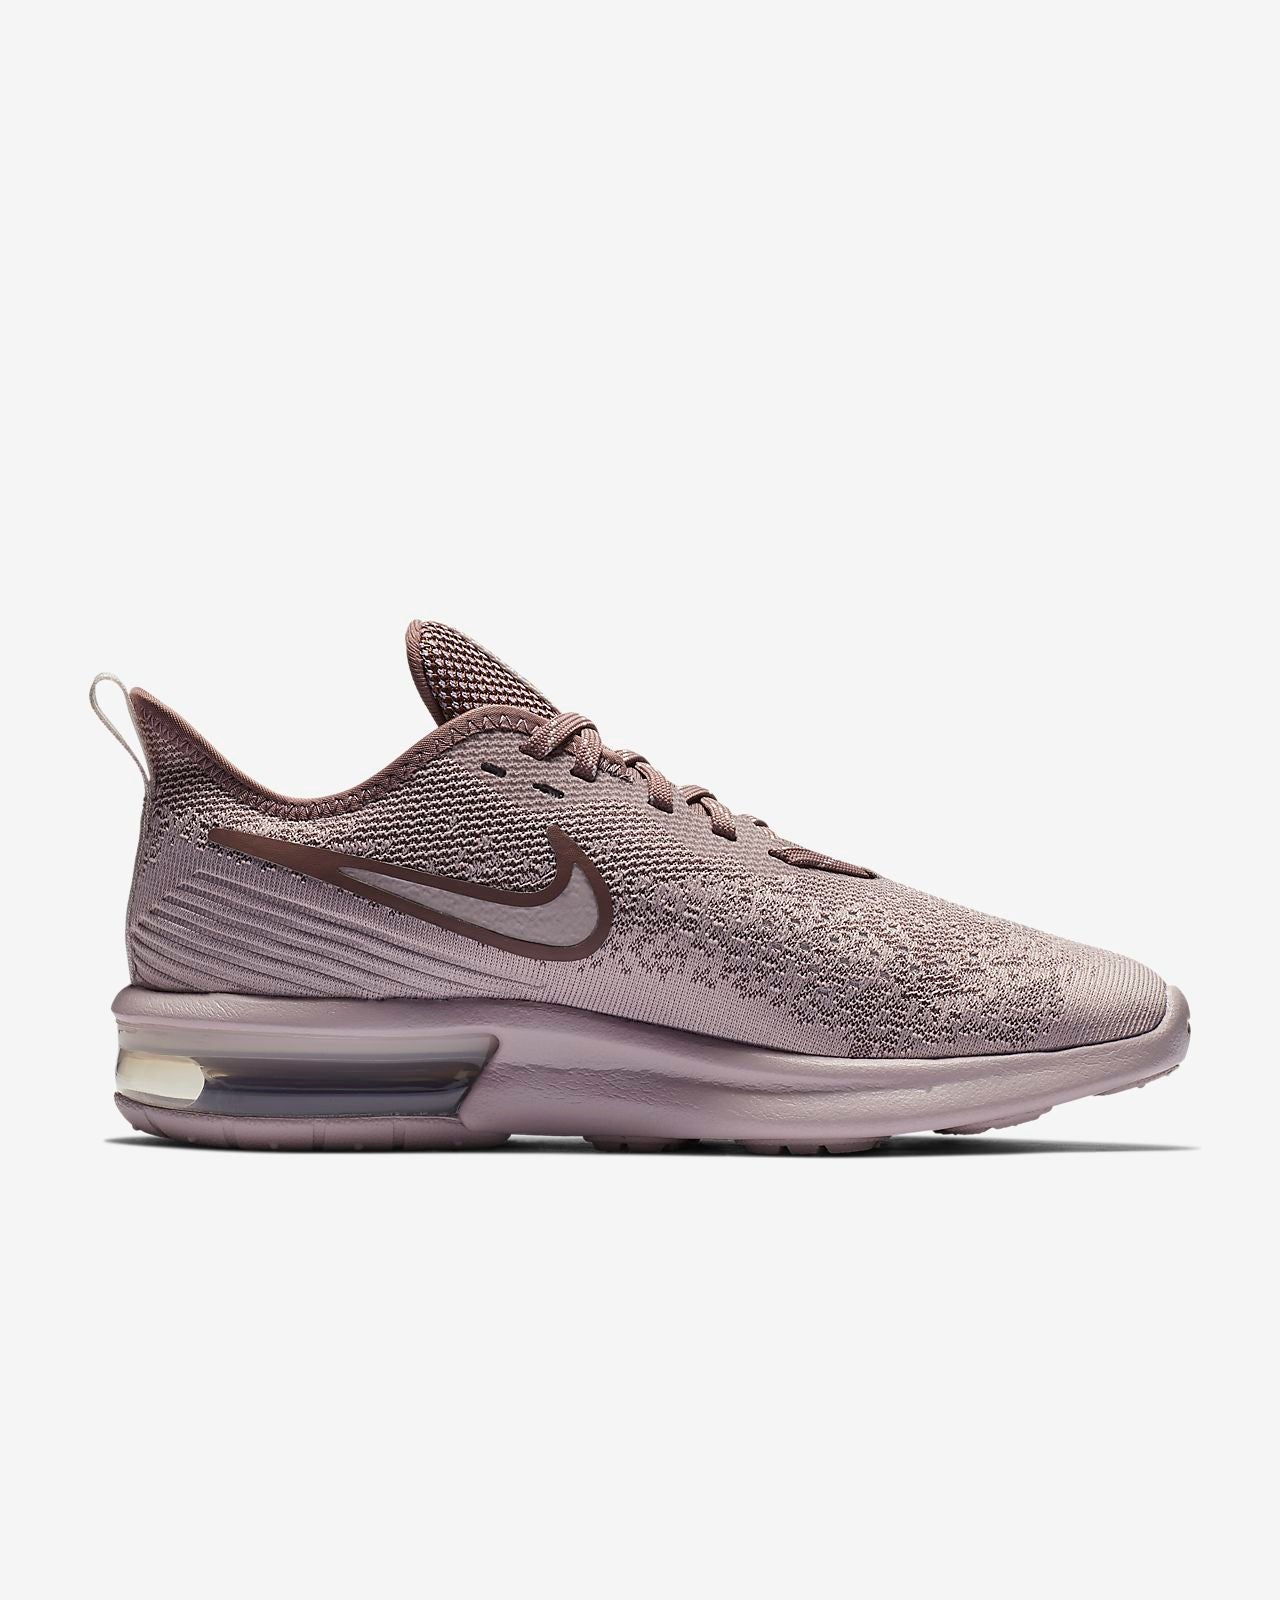 34aabaa7a7b5e Buy NIKE Women Air Max Sequent 4 Running Shoes